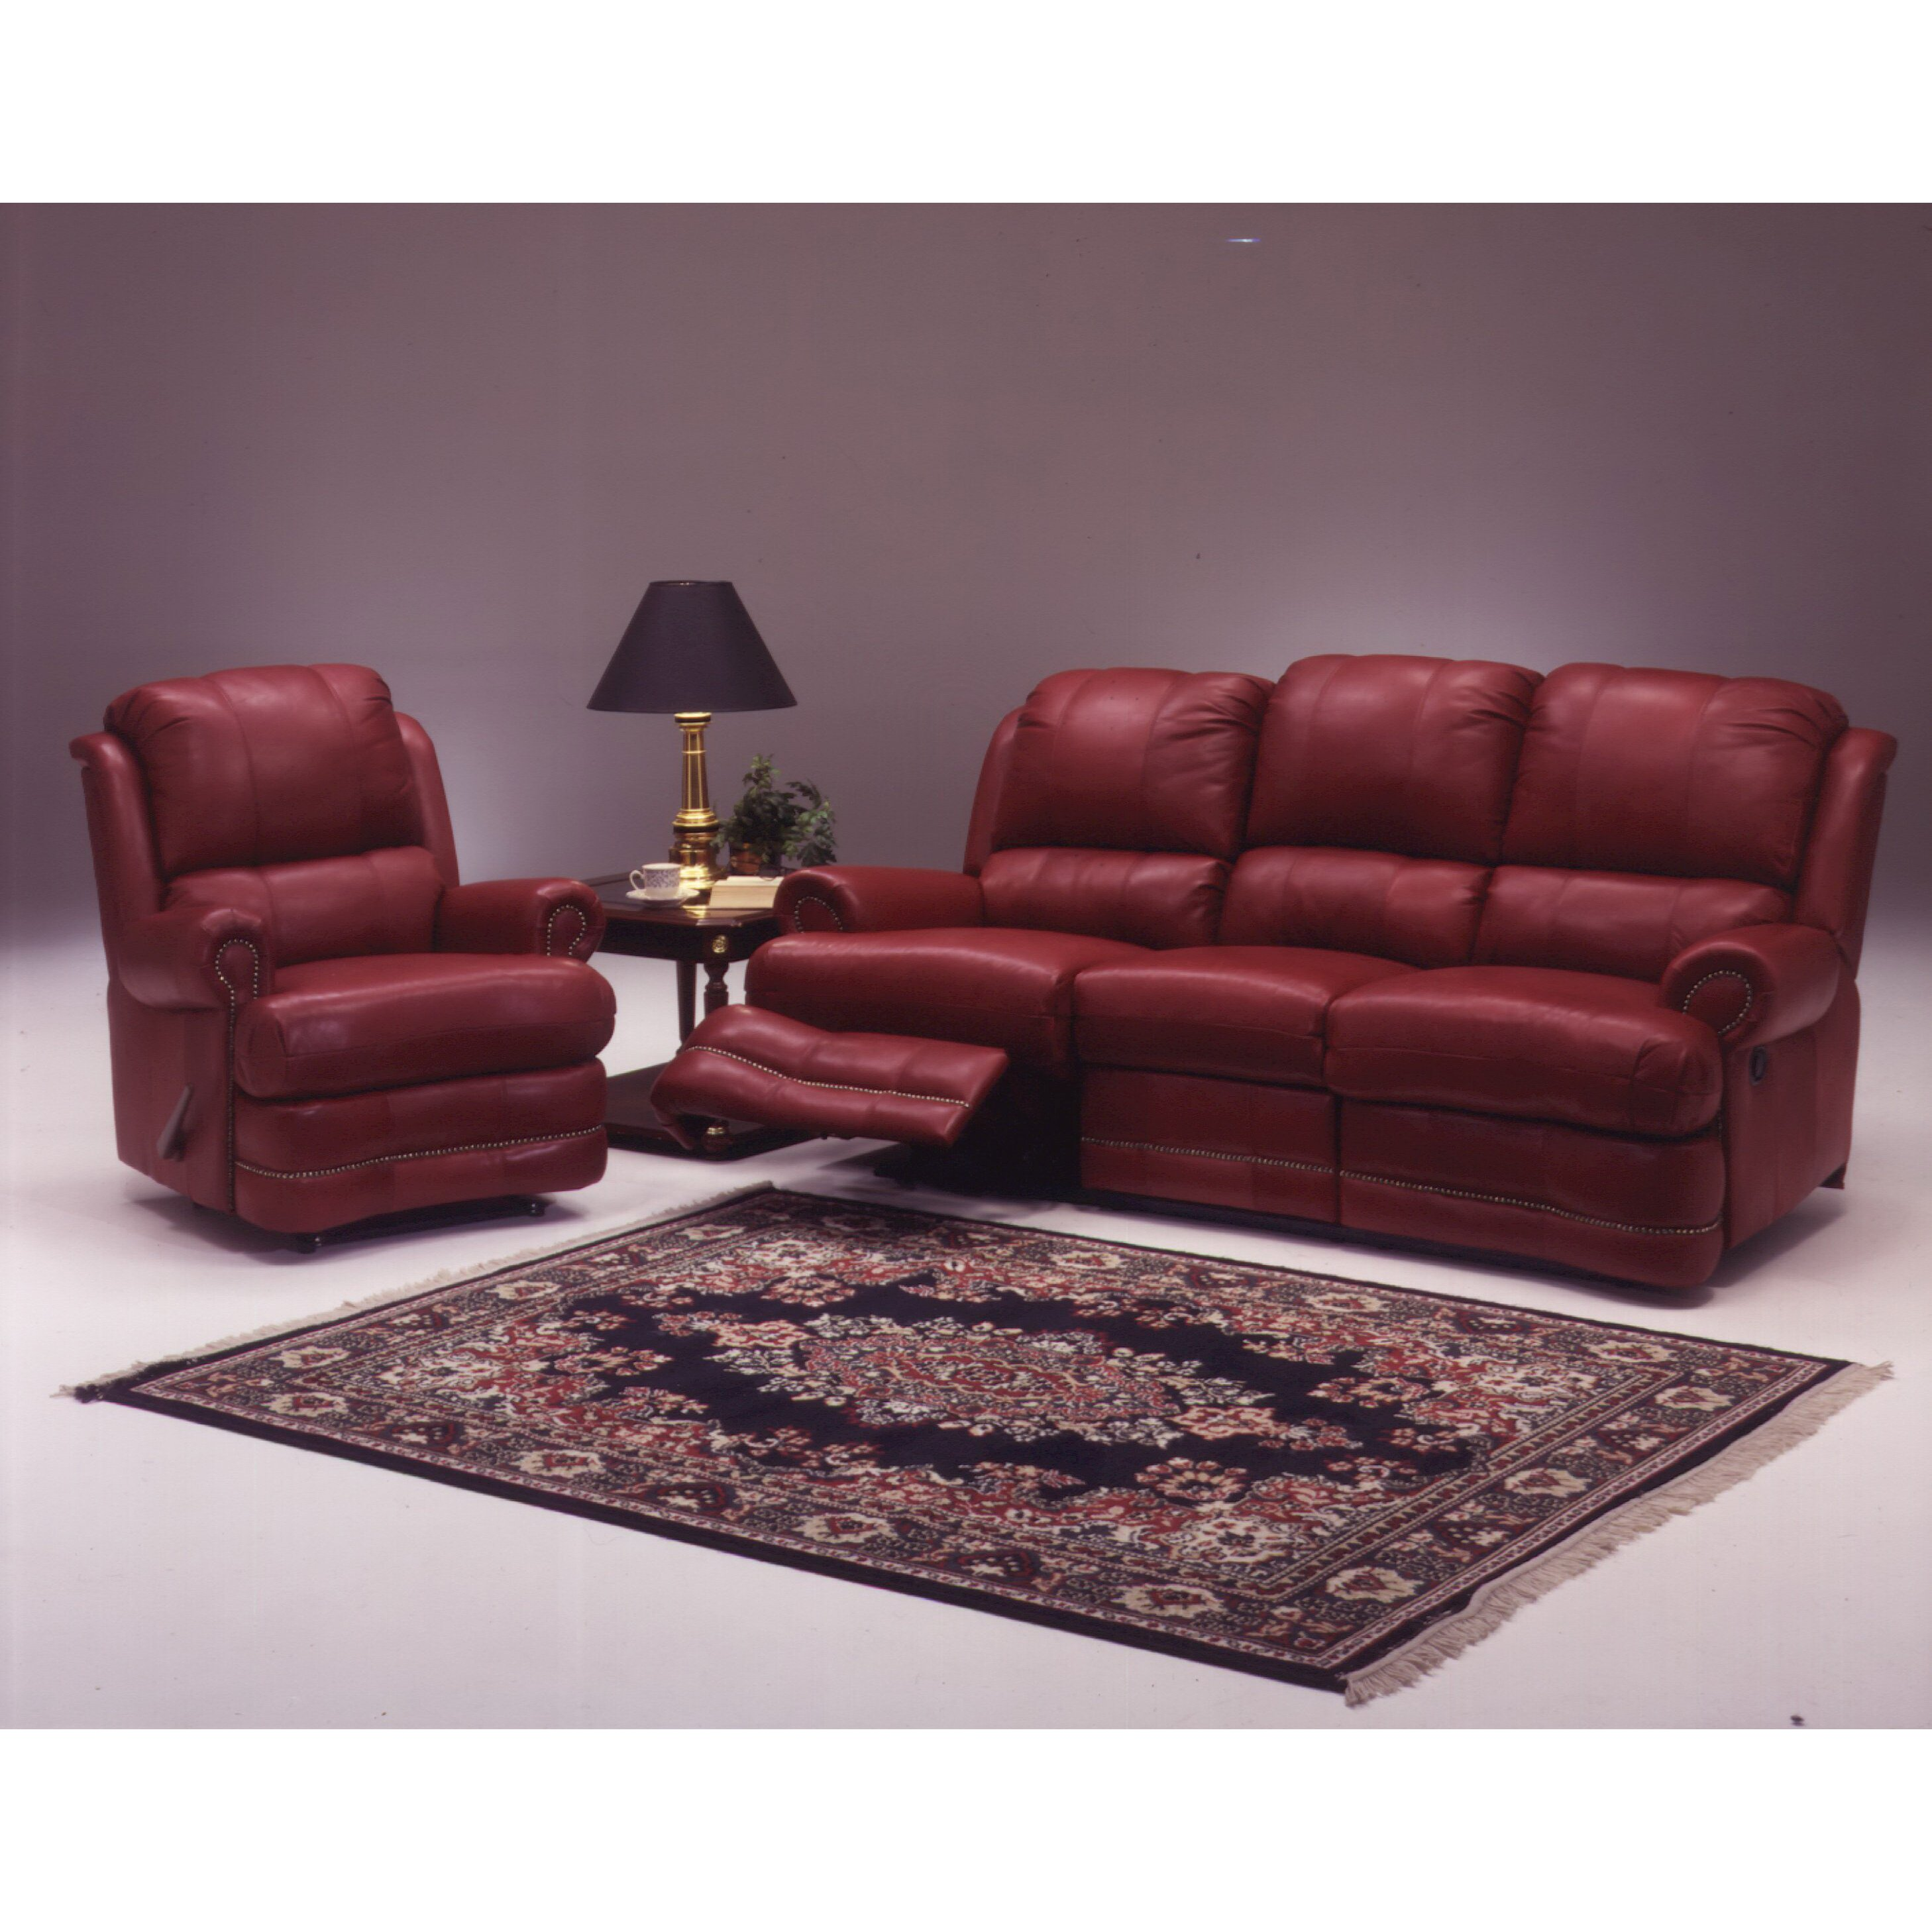 Living Room Sets Reclining: Omnia Leather Morgan Reclining Leather Living Room Set